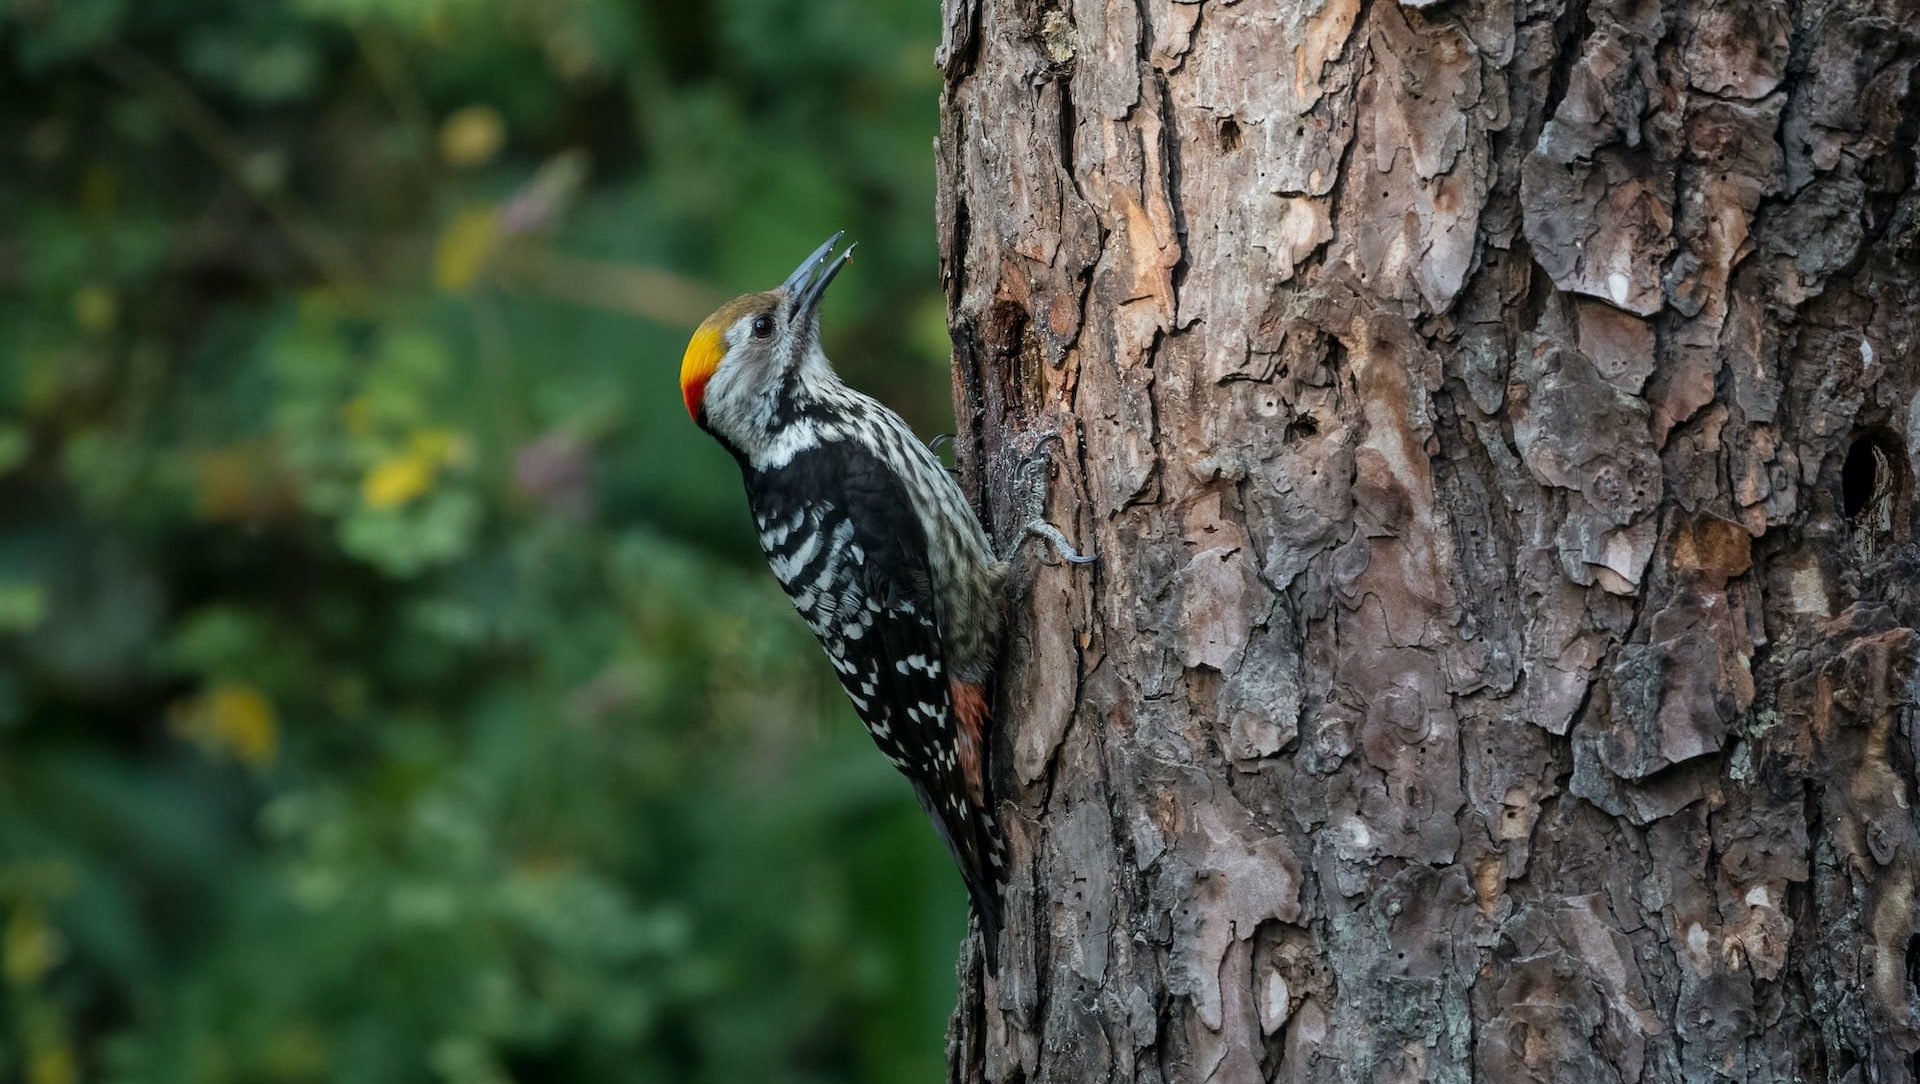 Size Matters: Why Woodpeckers in Sub-Himalayan Forests Peck the Largest Trees